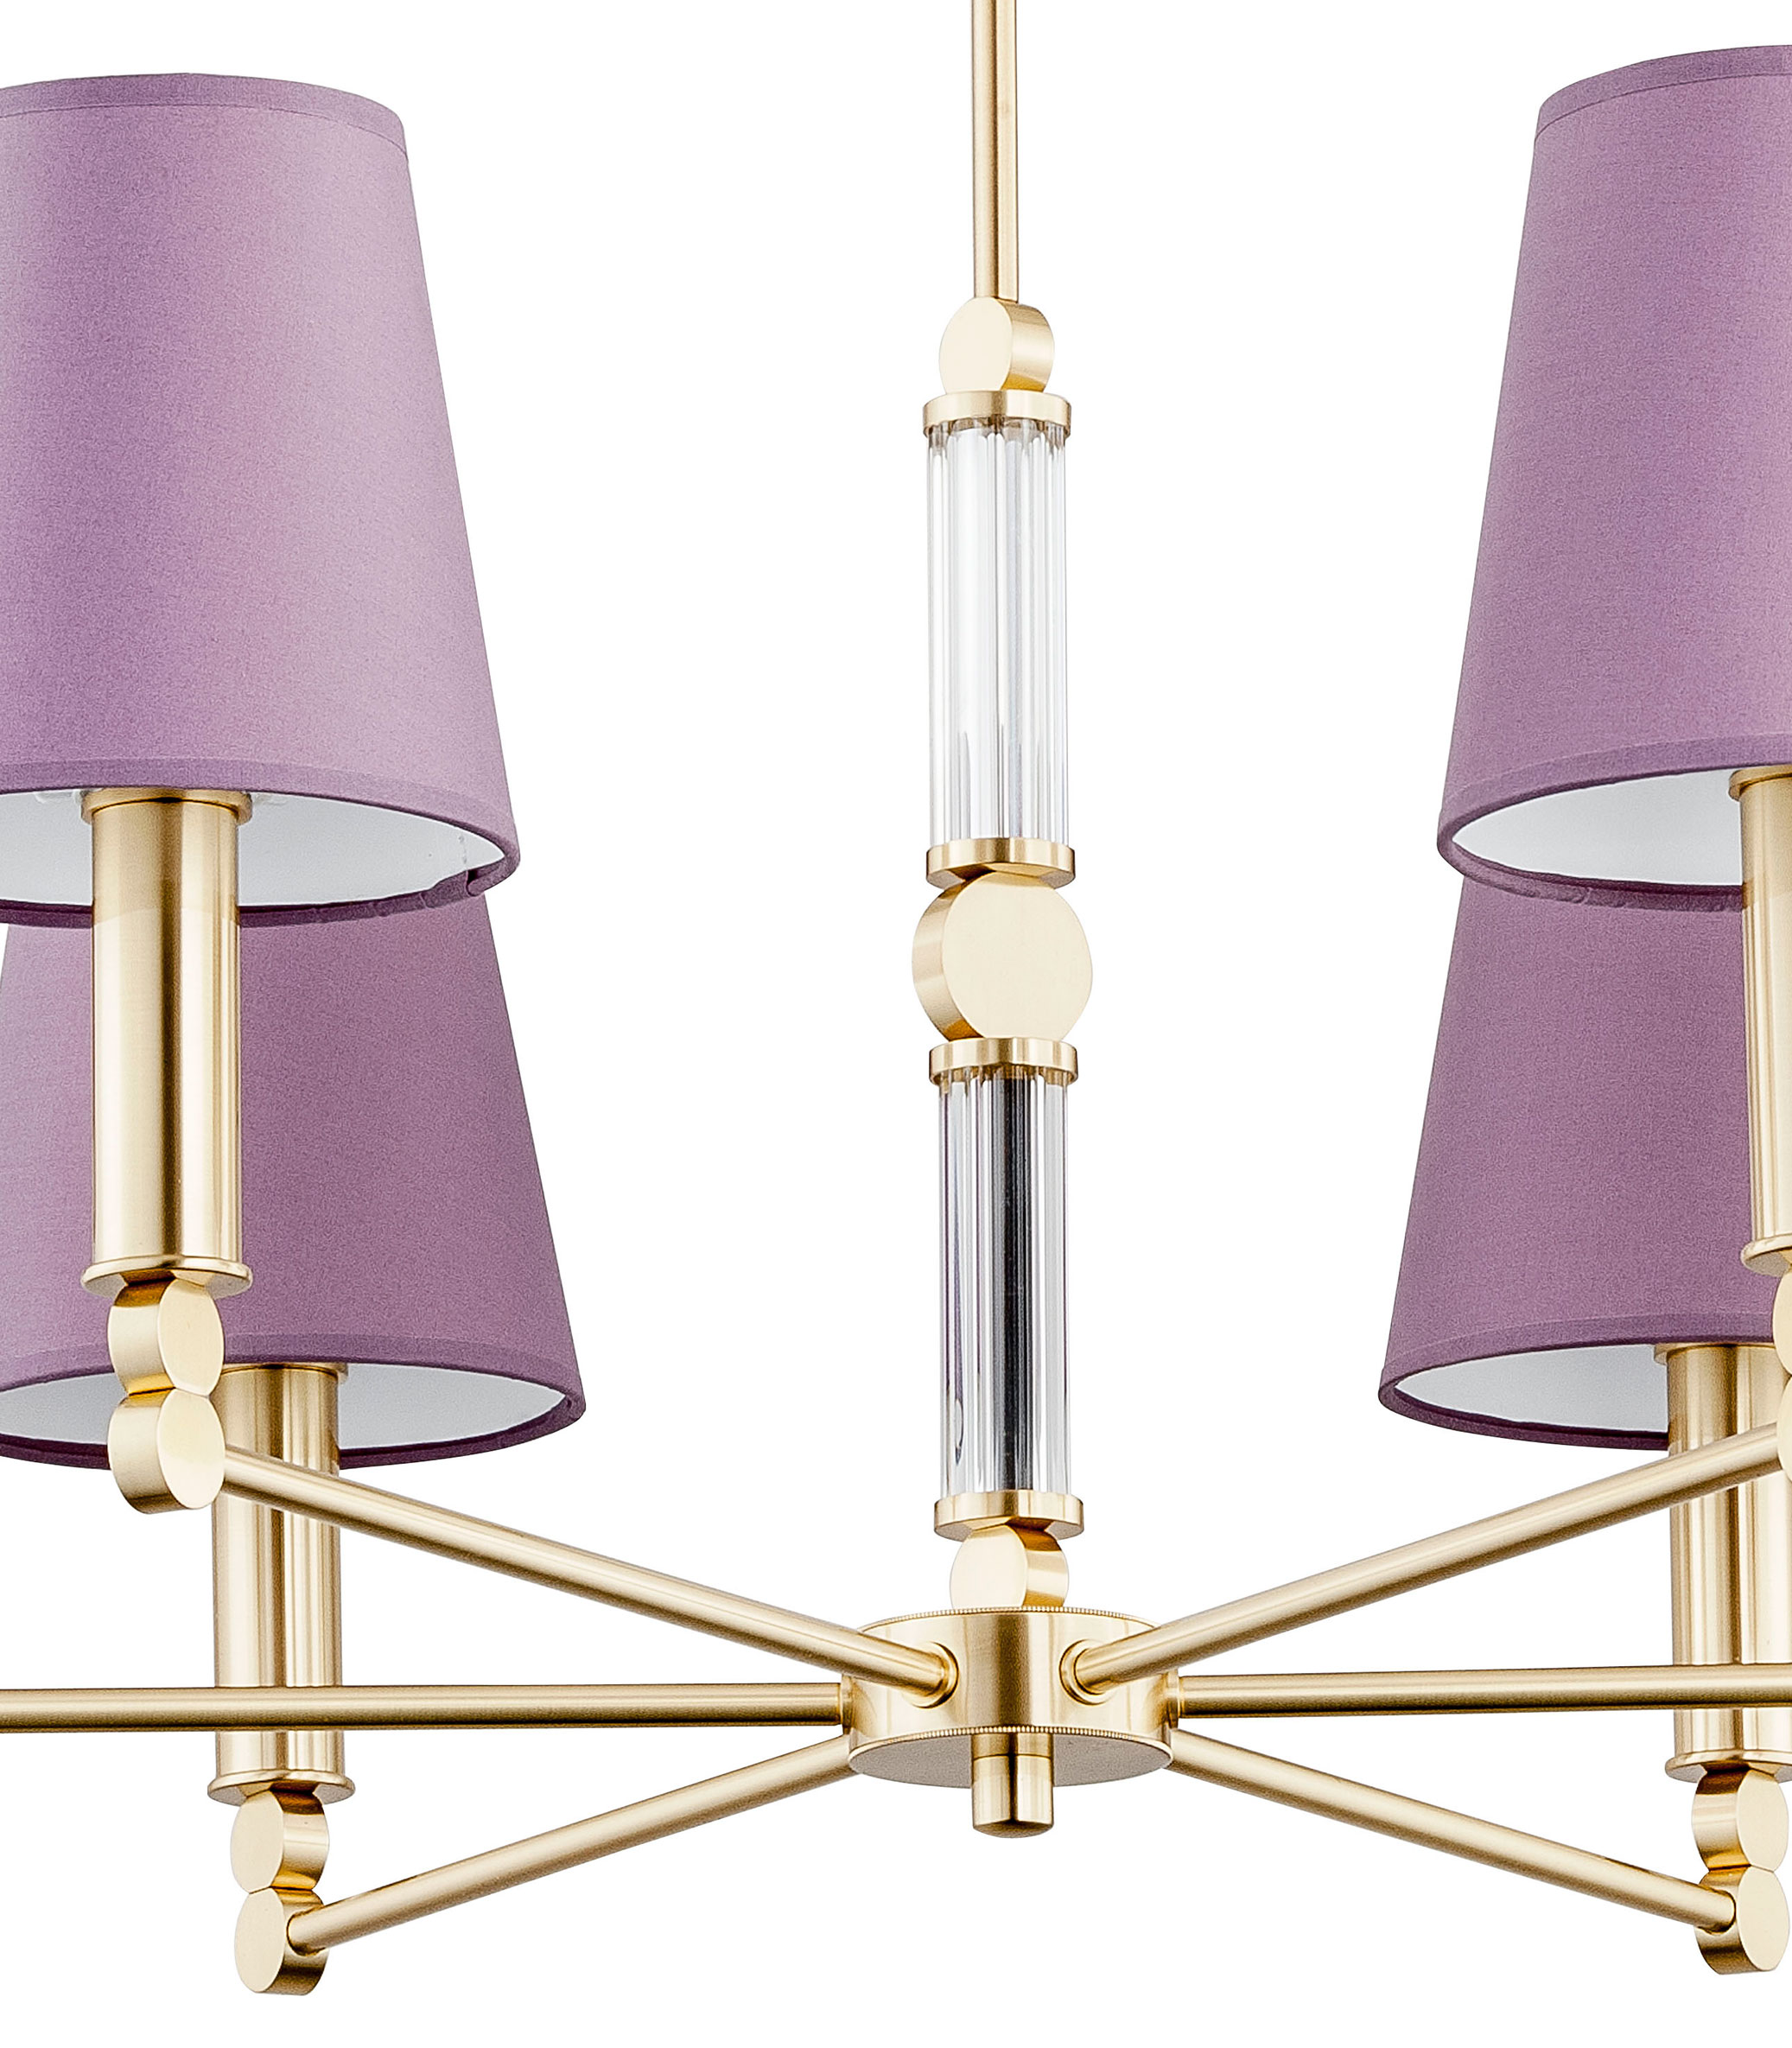 Transitional Gold Chandelier Tamara 6 Light Pink Shade Luxury Chandelier